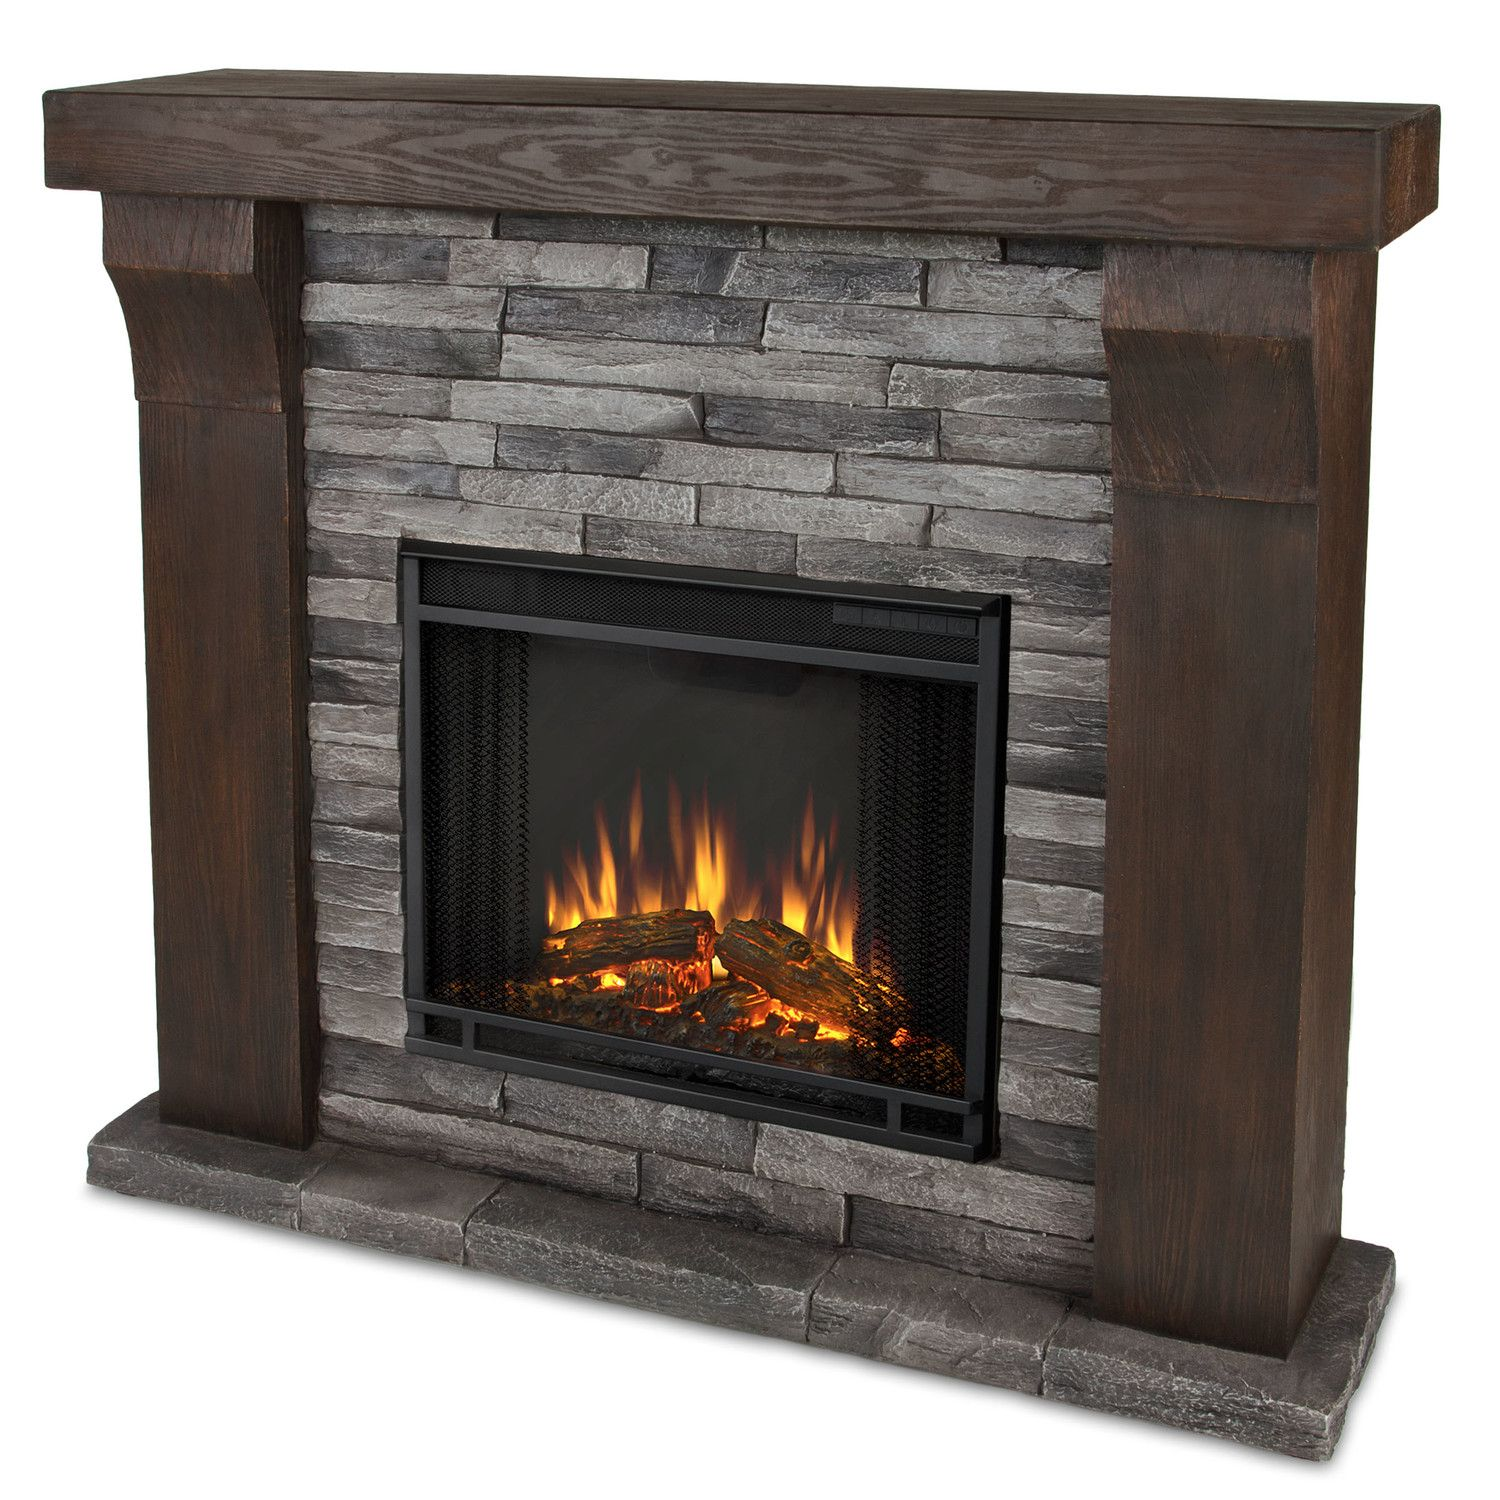 8554c3cca2add8b50524f017b810a427 Top Result 50 Awesome Corner Electric Fireplace Pic 2018 Jdt4